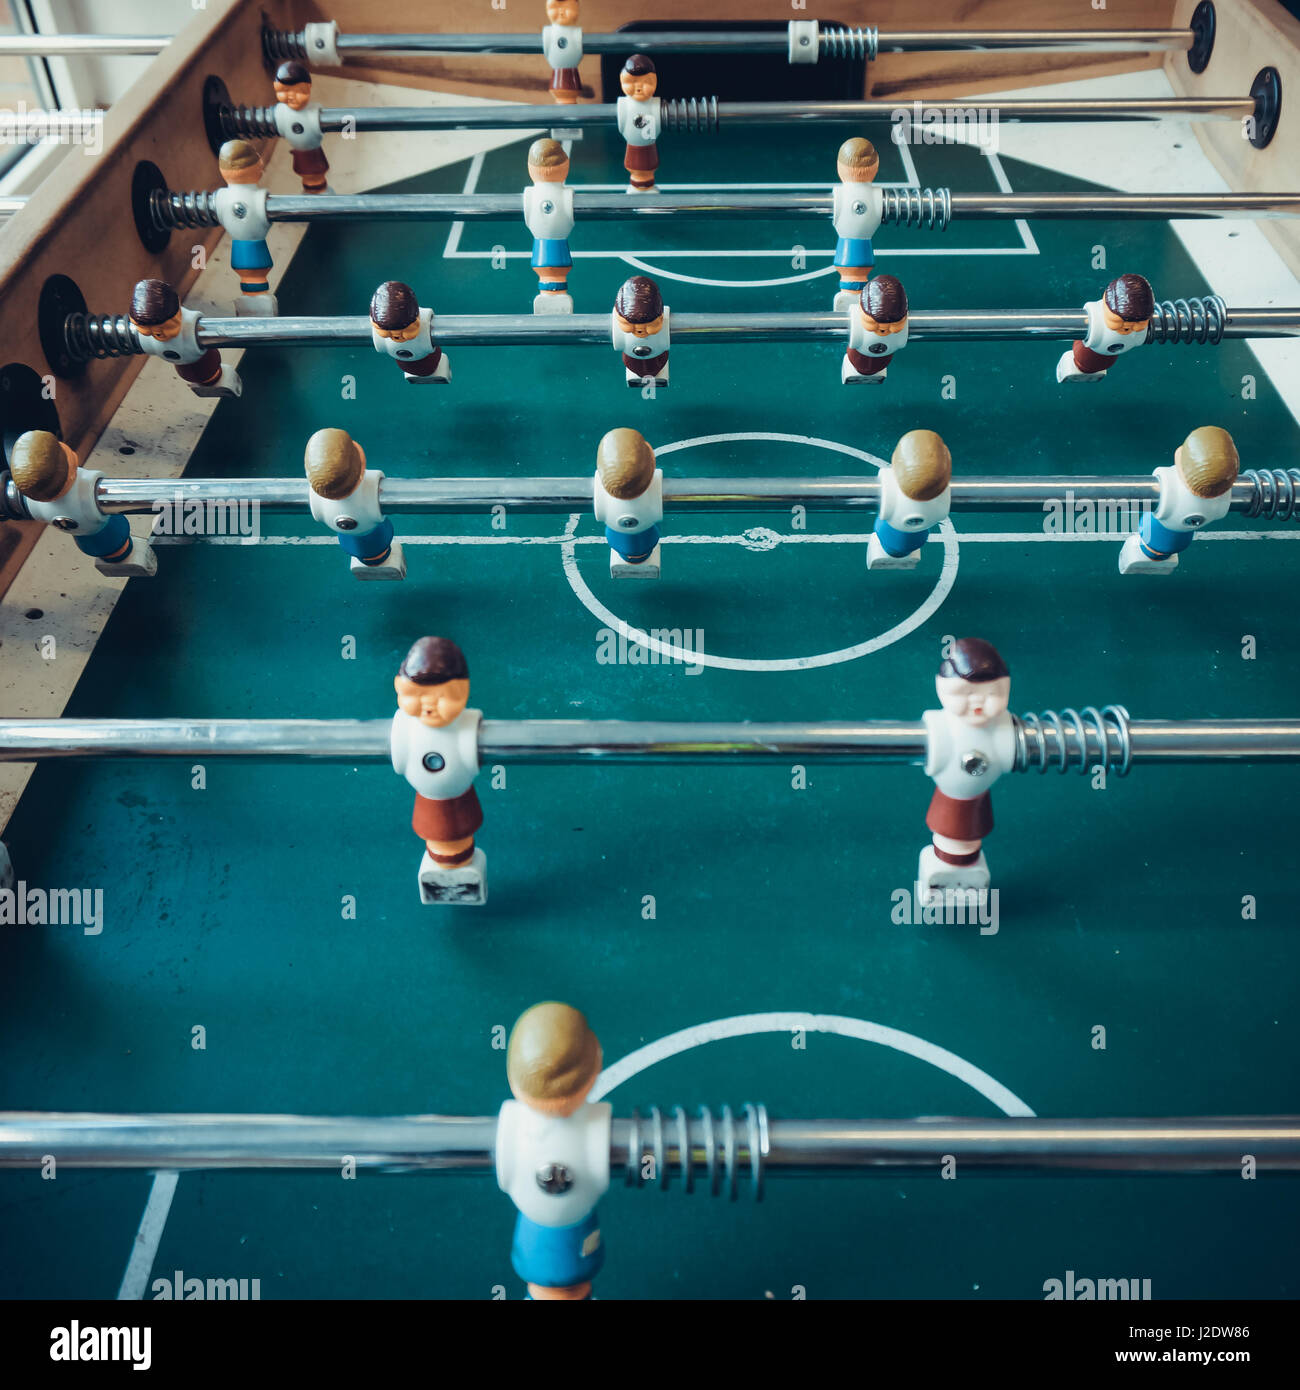 Table football game.  Soccer table game - Stock Image